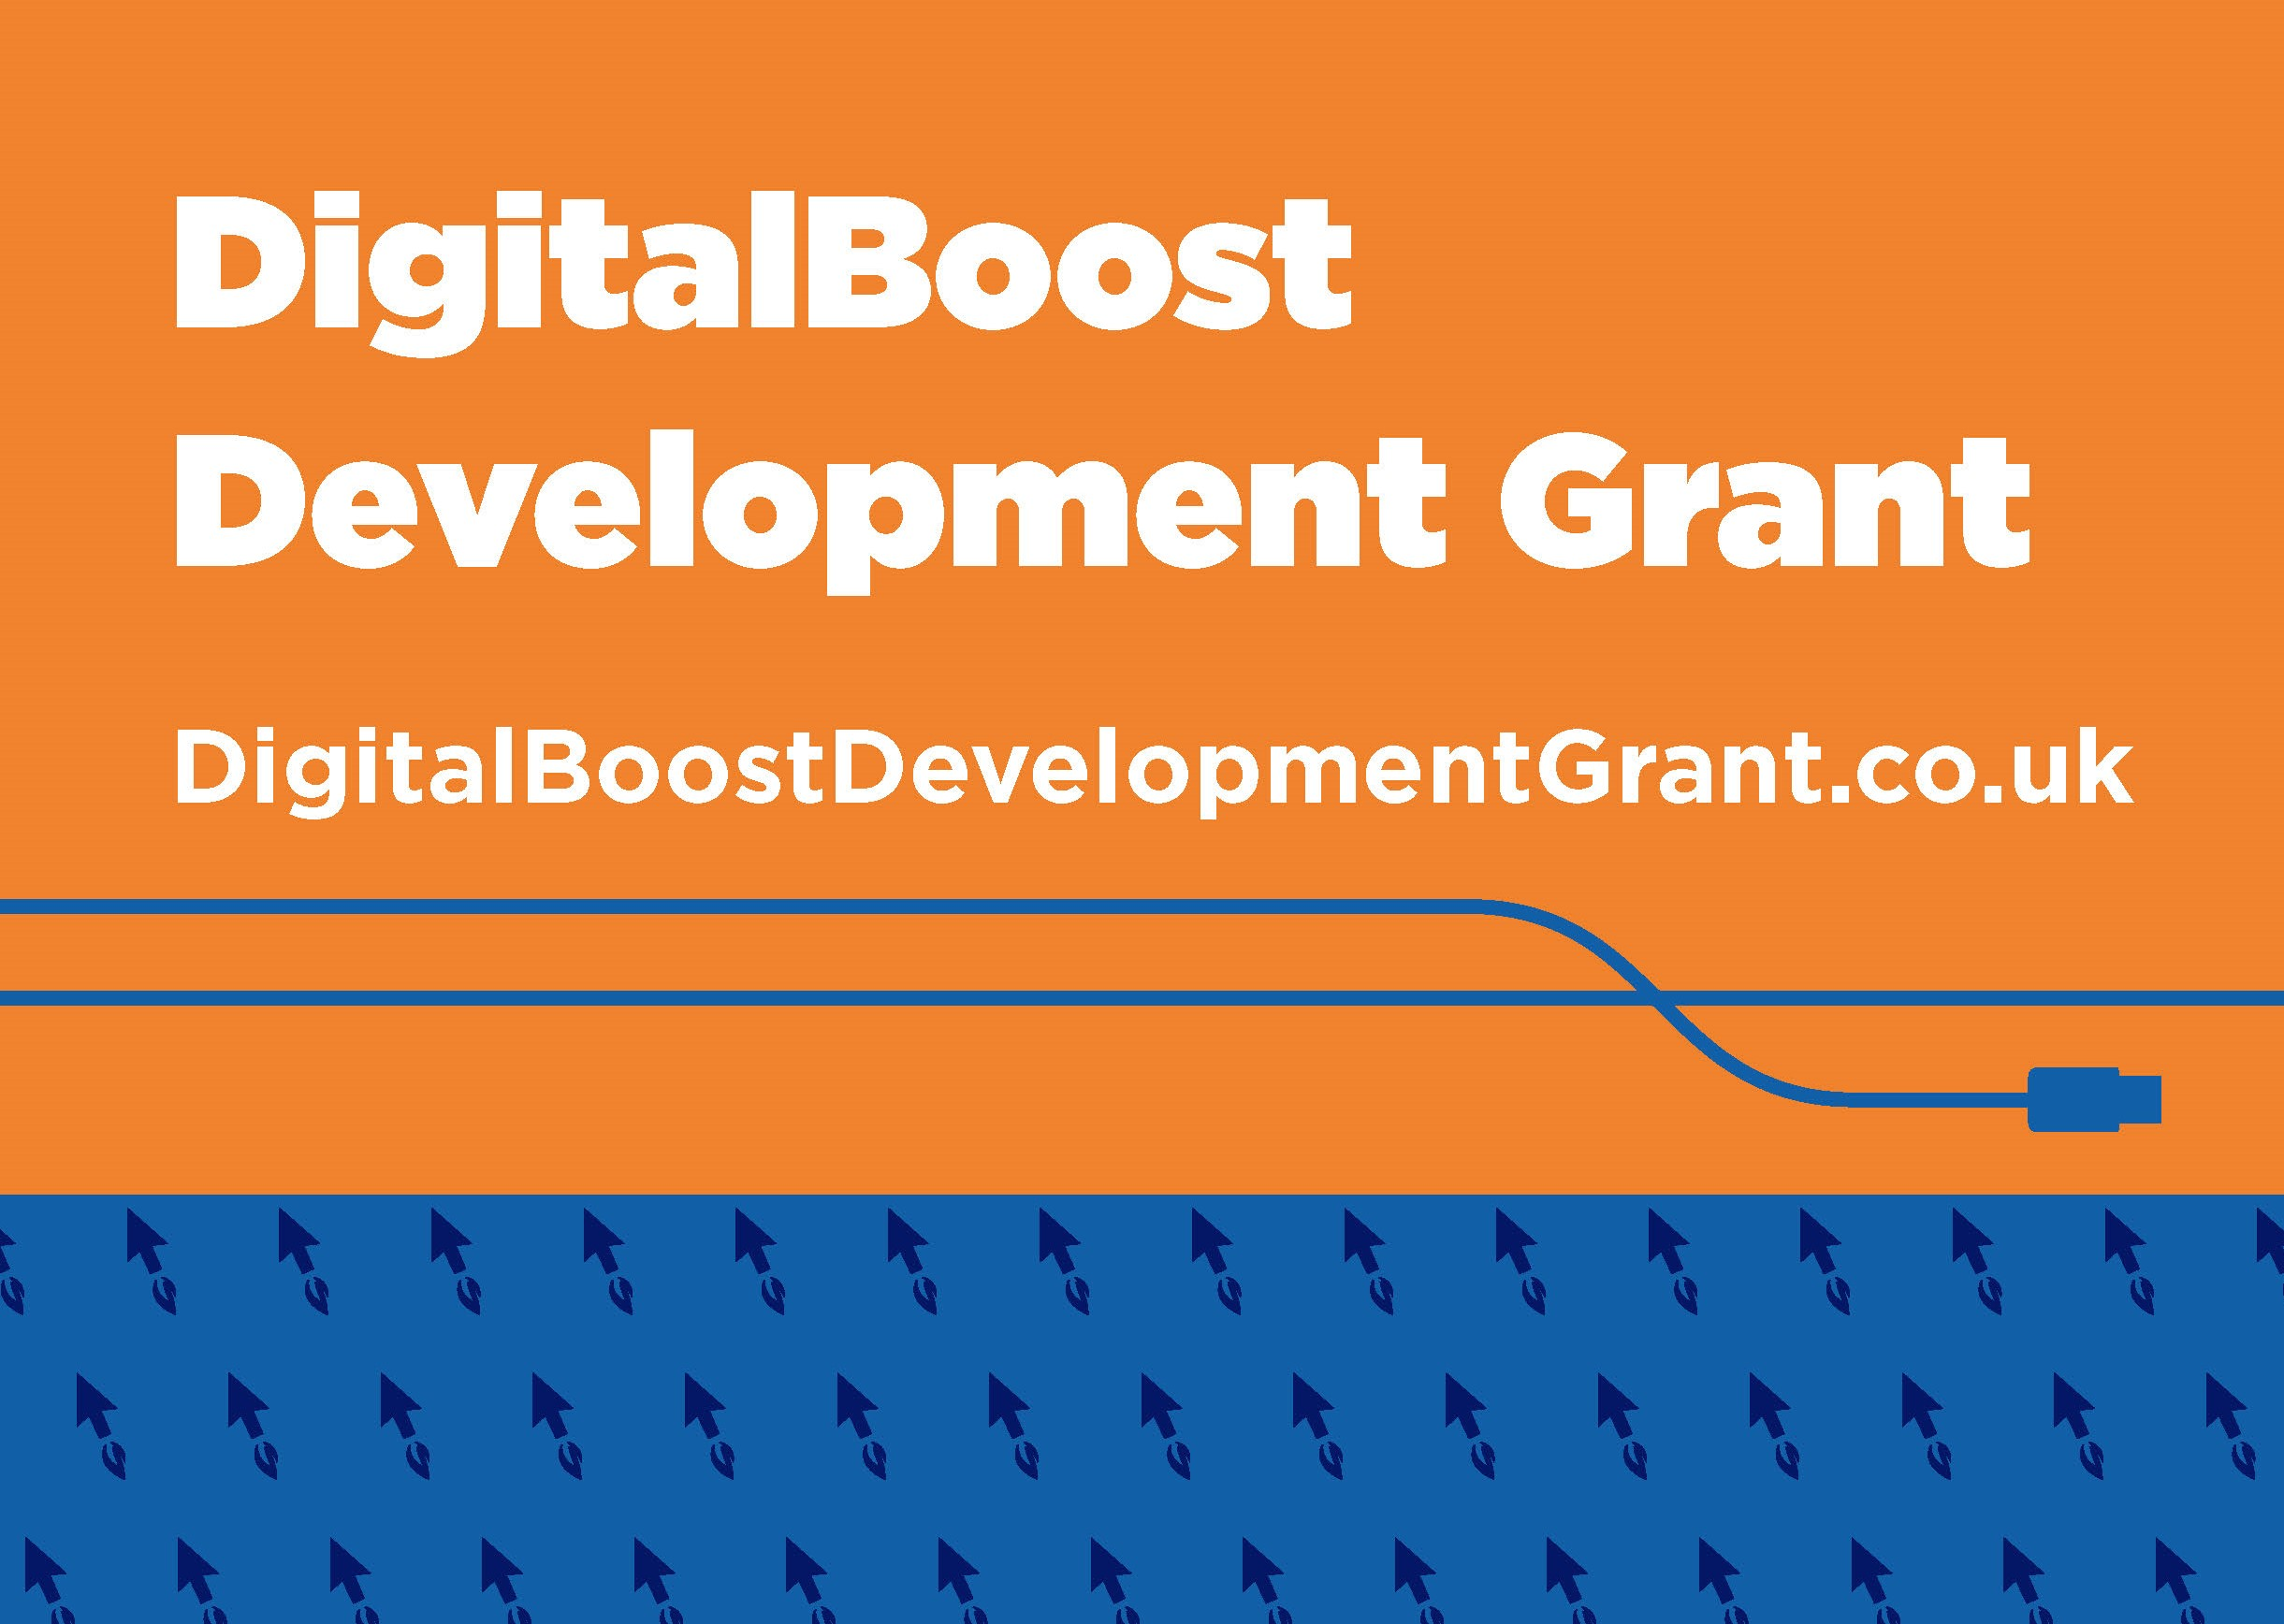 DigitalBoost Development Grant